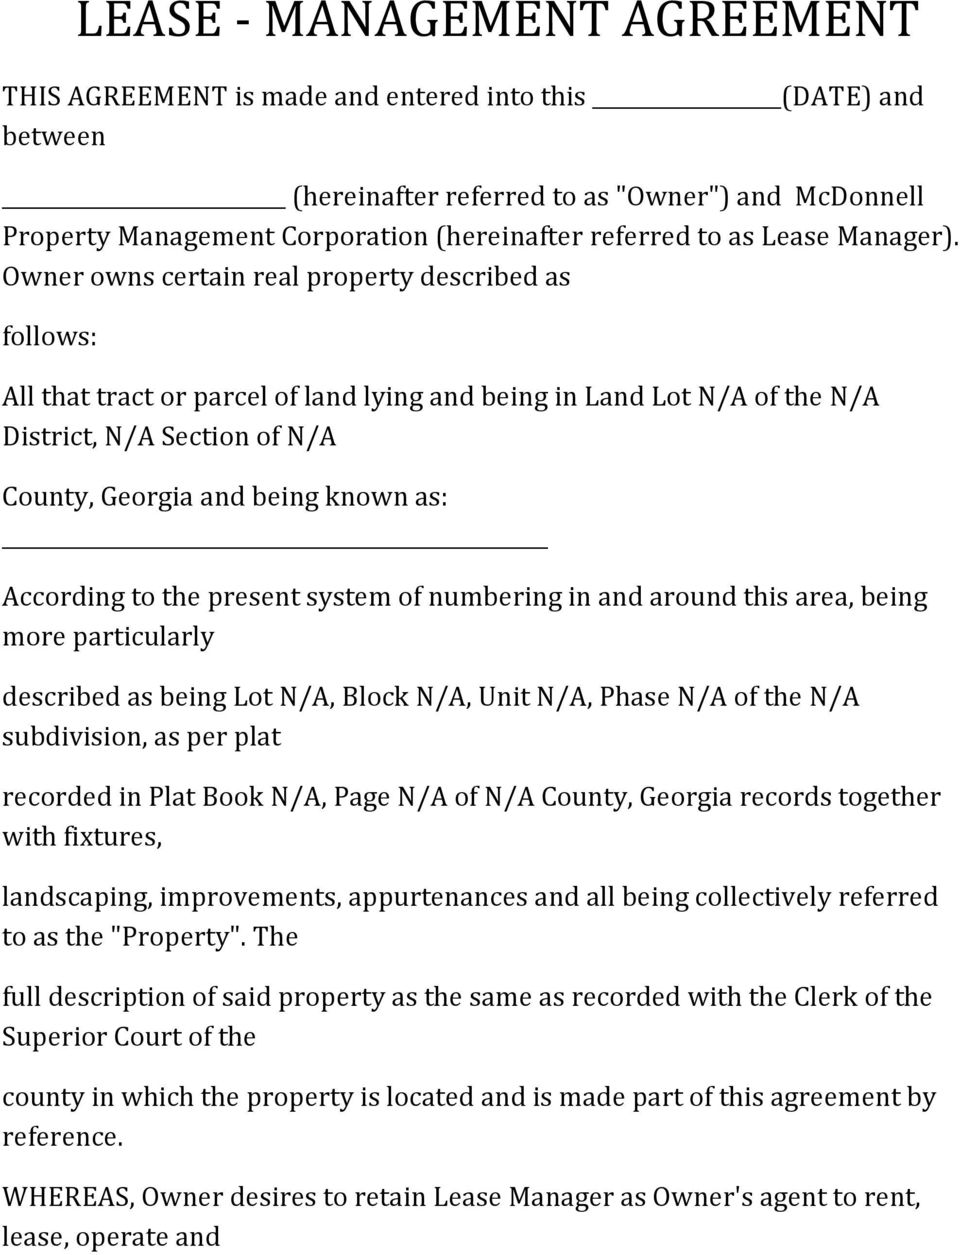 Owner owns certain real property described as follows: All that tract or parcel of land lying and being in Land Lot N/A of the N/A District, N/A Section of N/A County, Georgia and being known as: